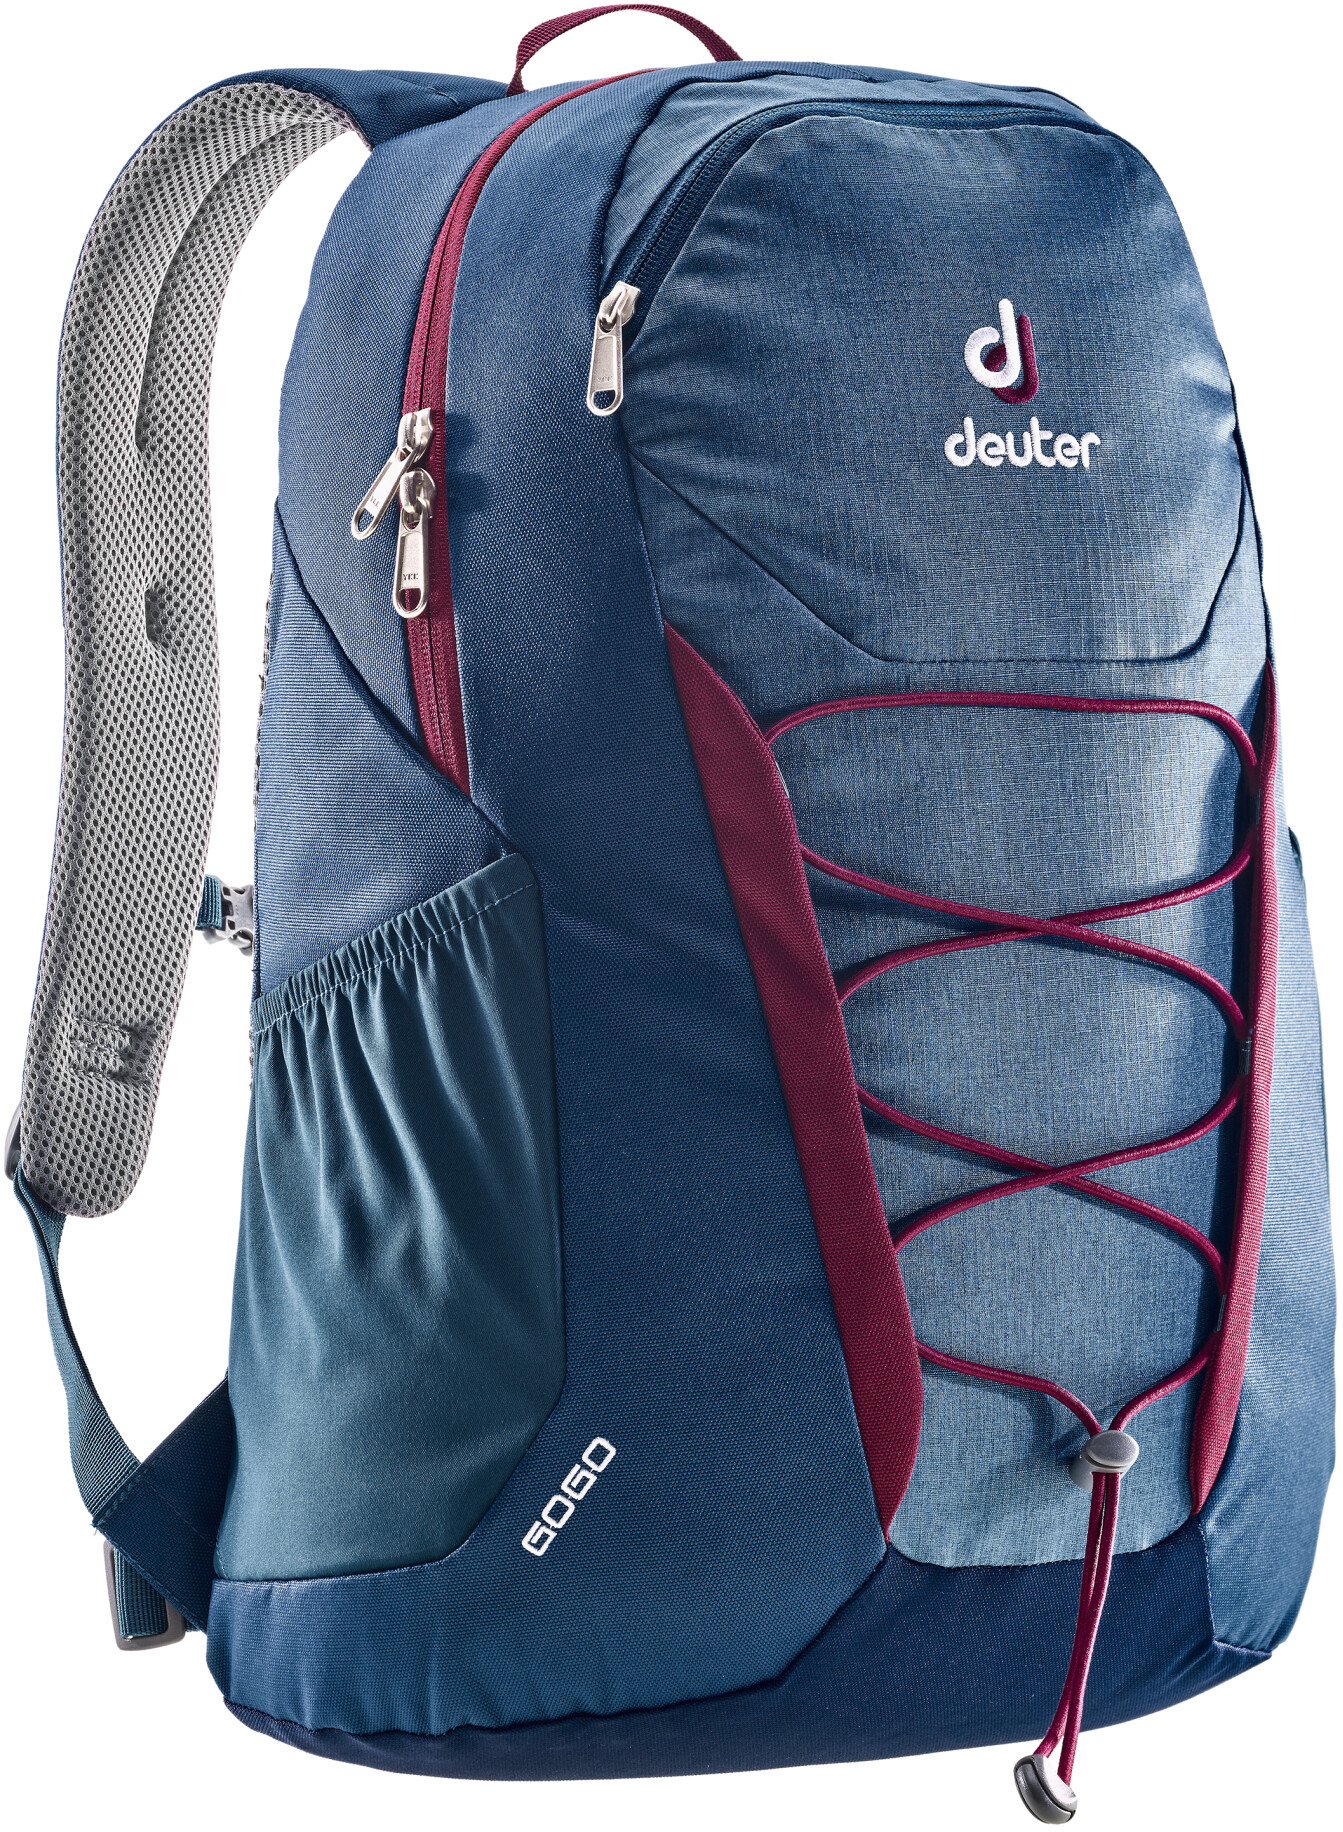 Deuter Gogo Backpack 25l arctic navy